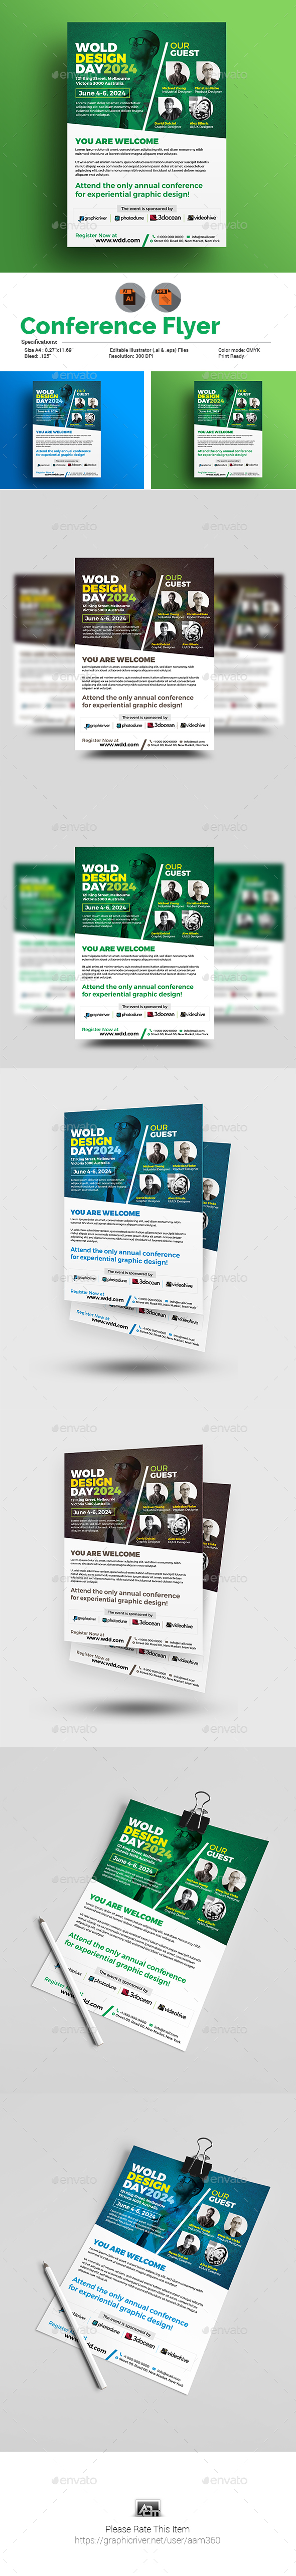 Conference Flyer - Corporate Flyers